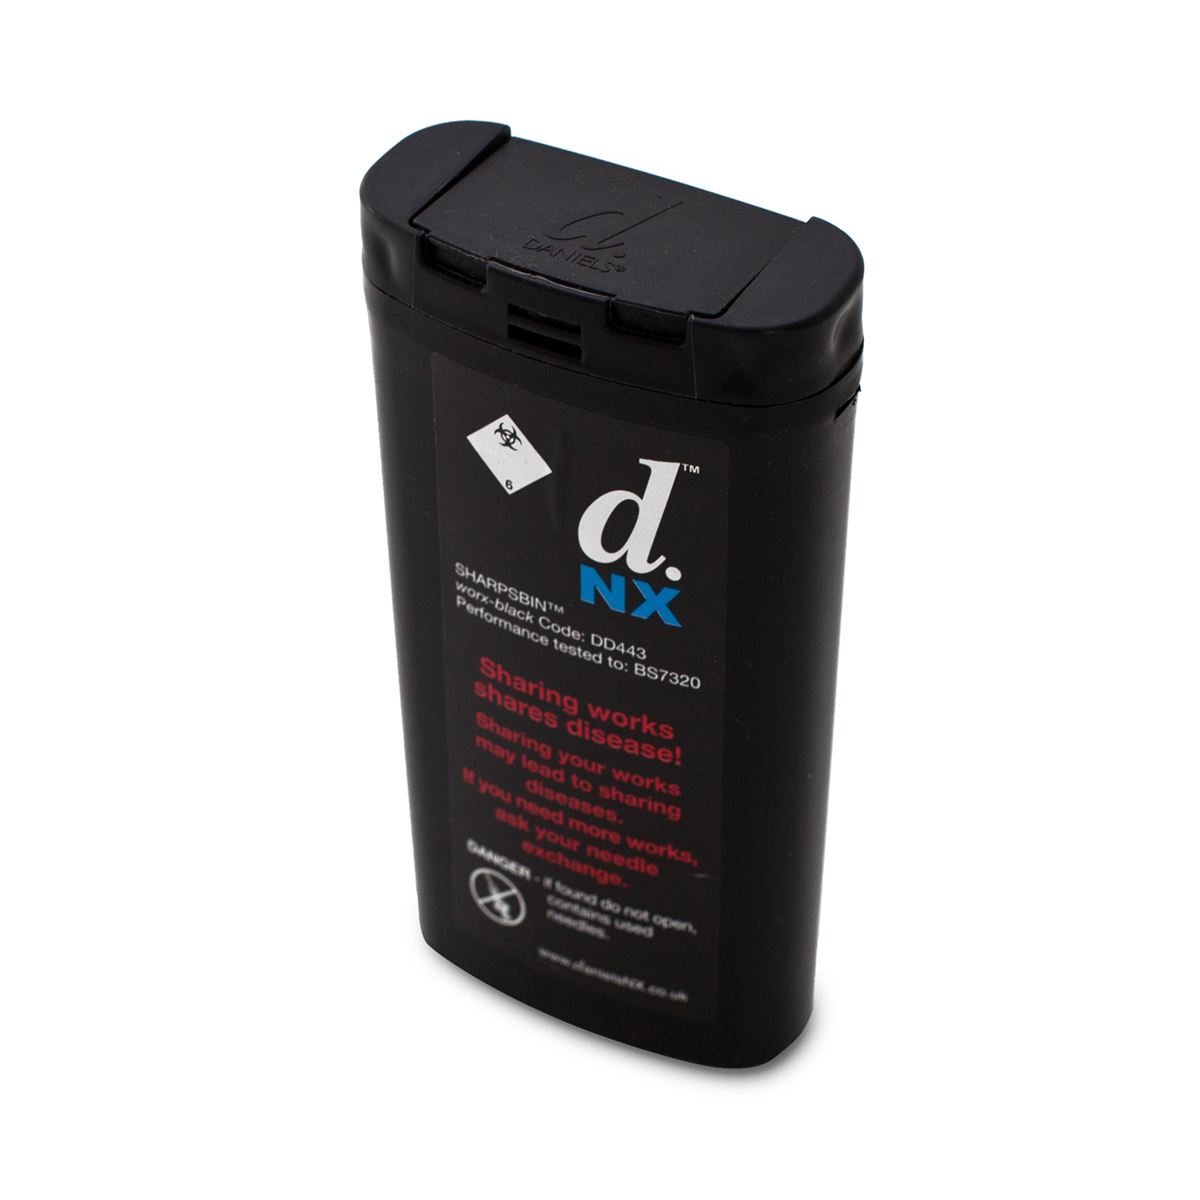 Daniels 0.25L Worx bin (temp out of stock)